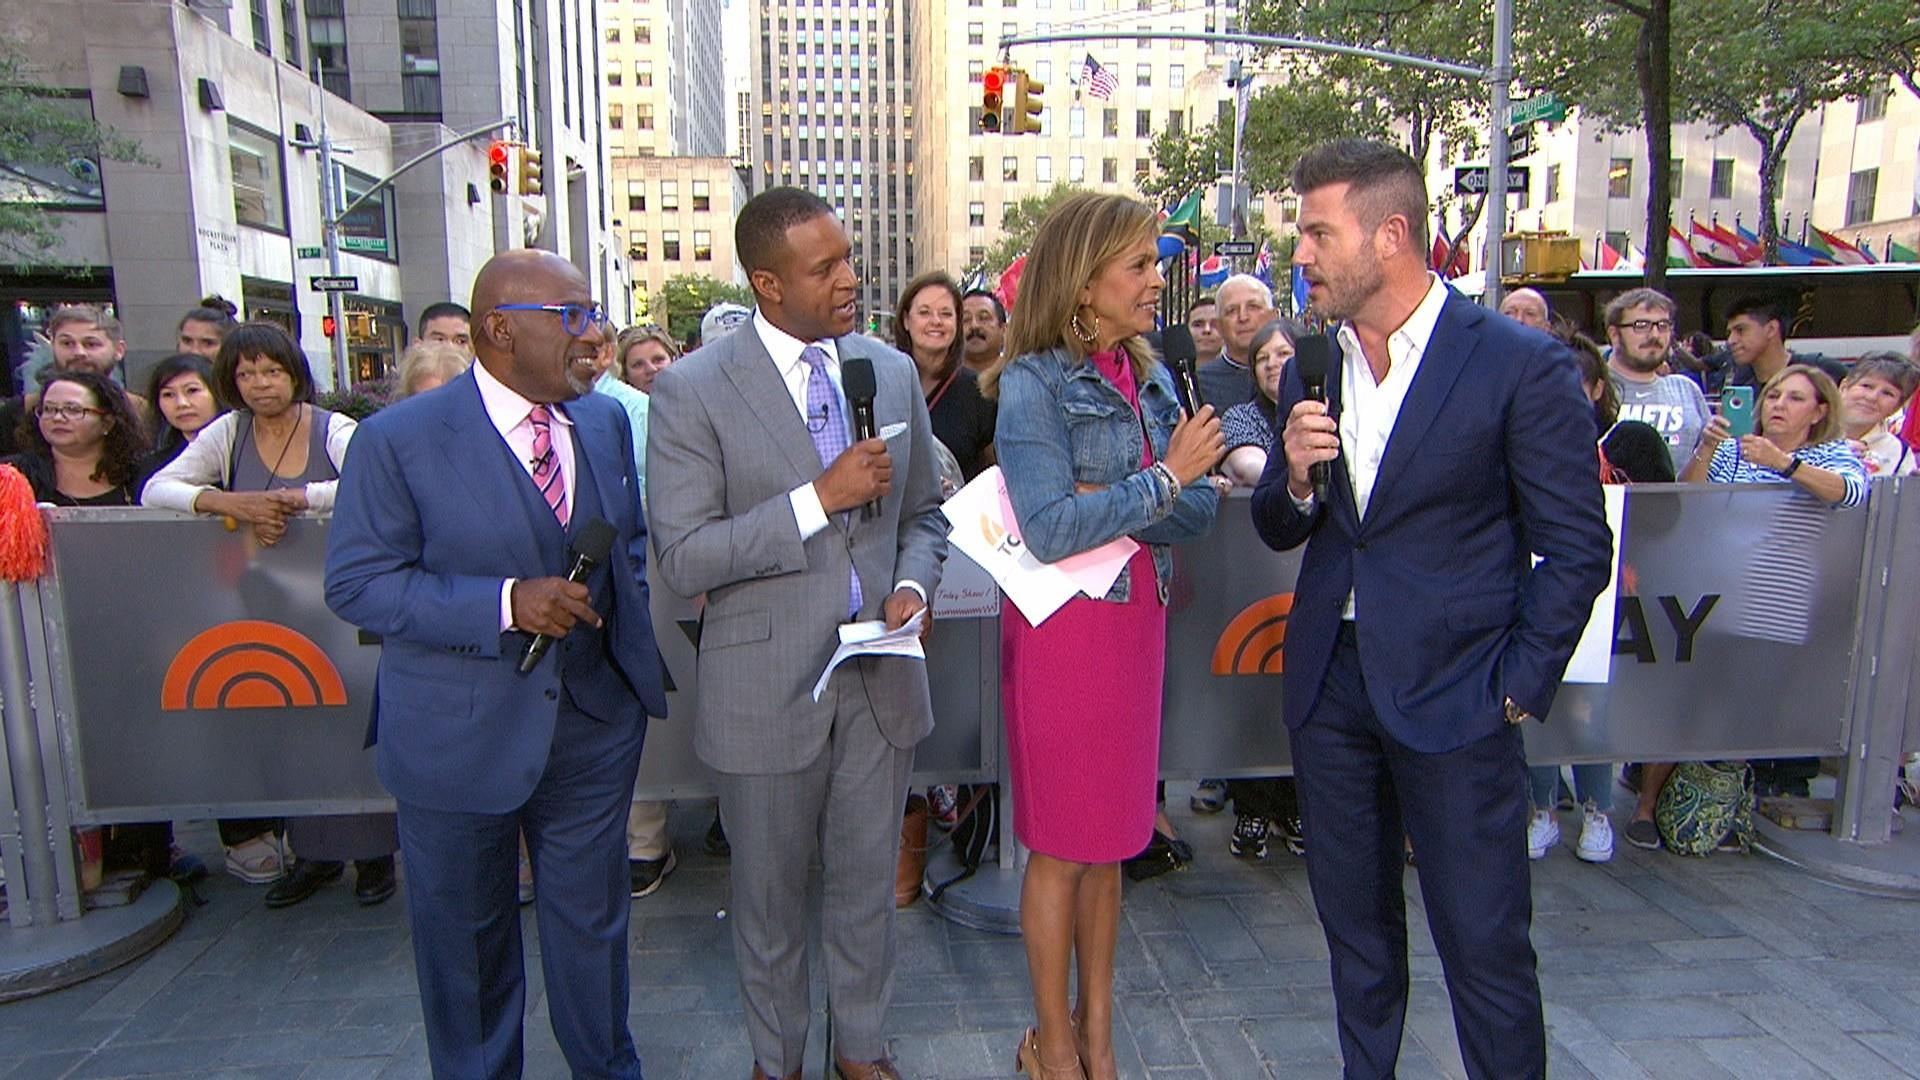 Jesse Palmer dishes on next season of 'Daily Mail TV'